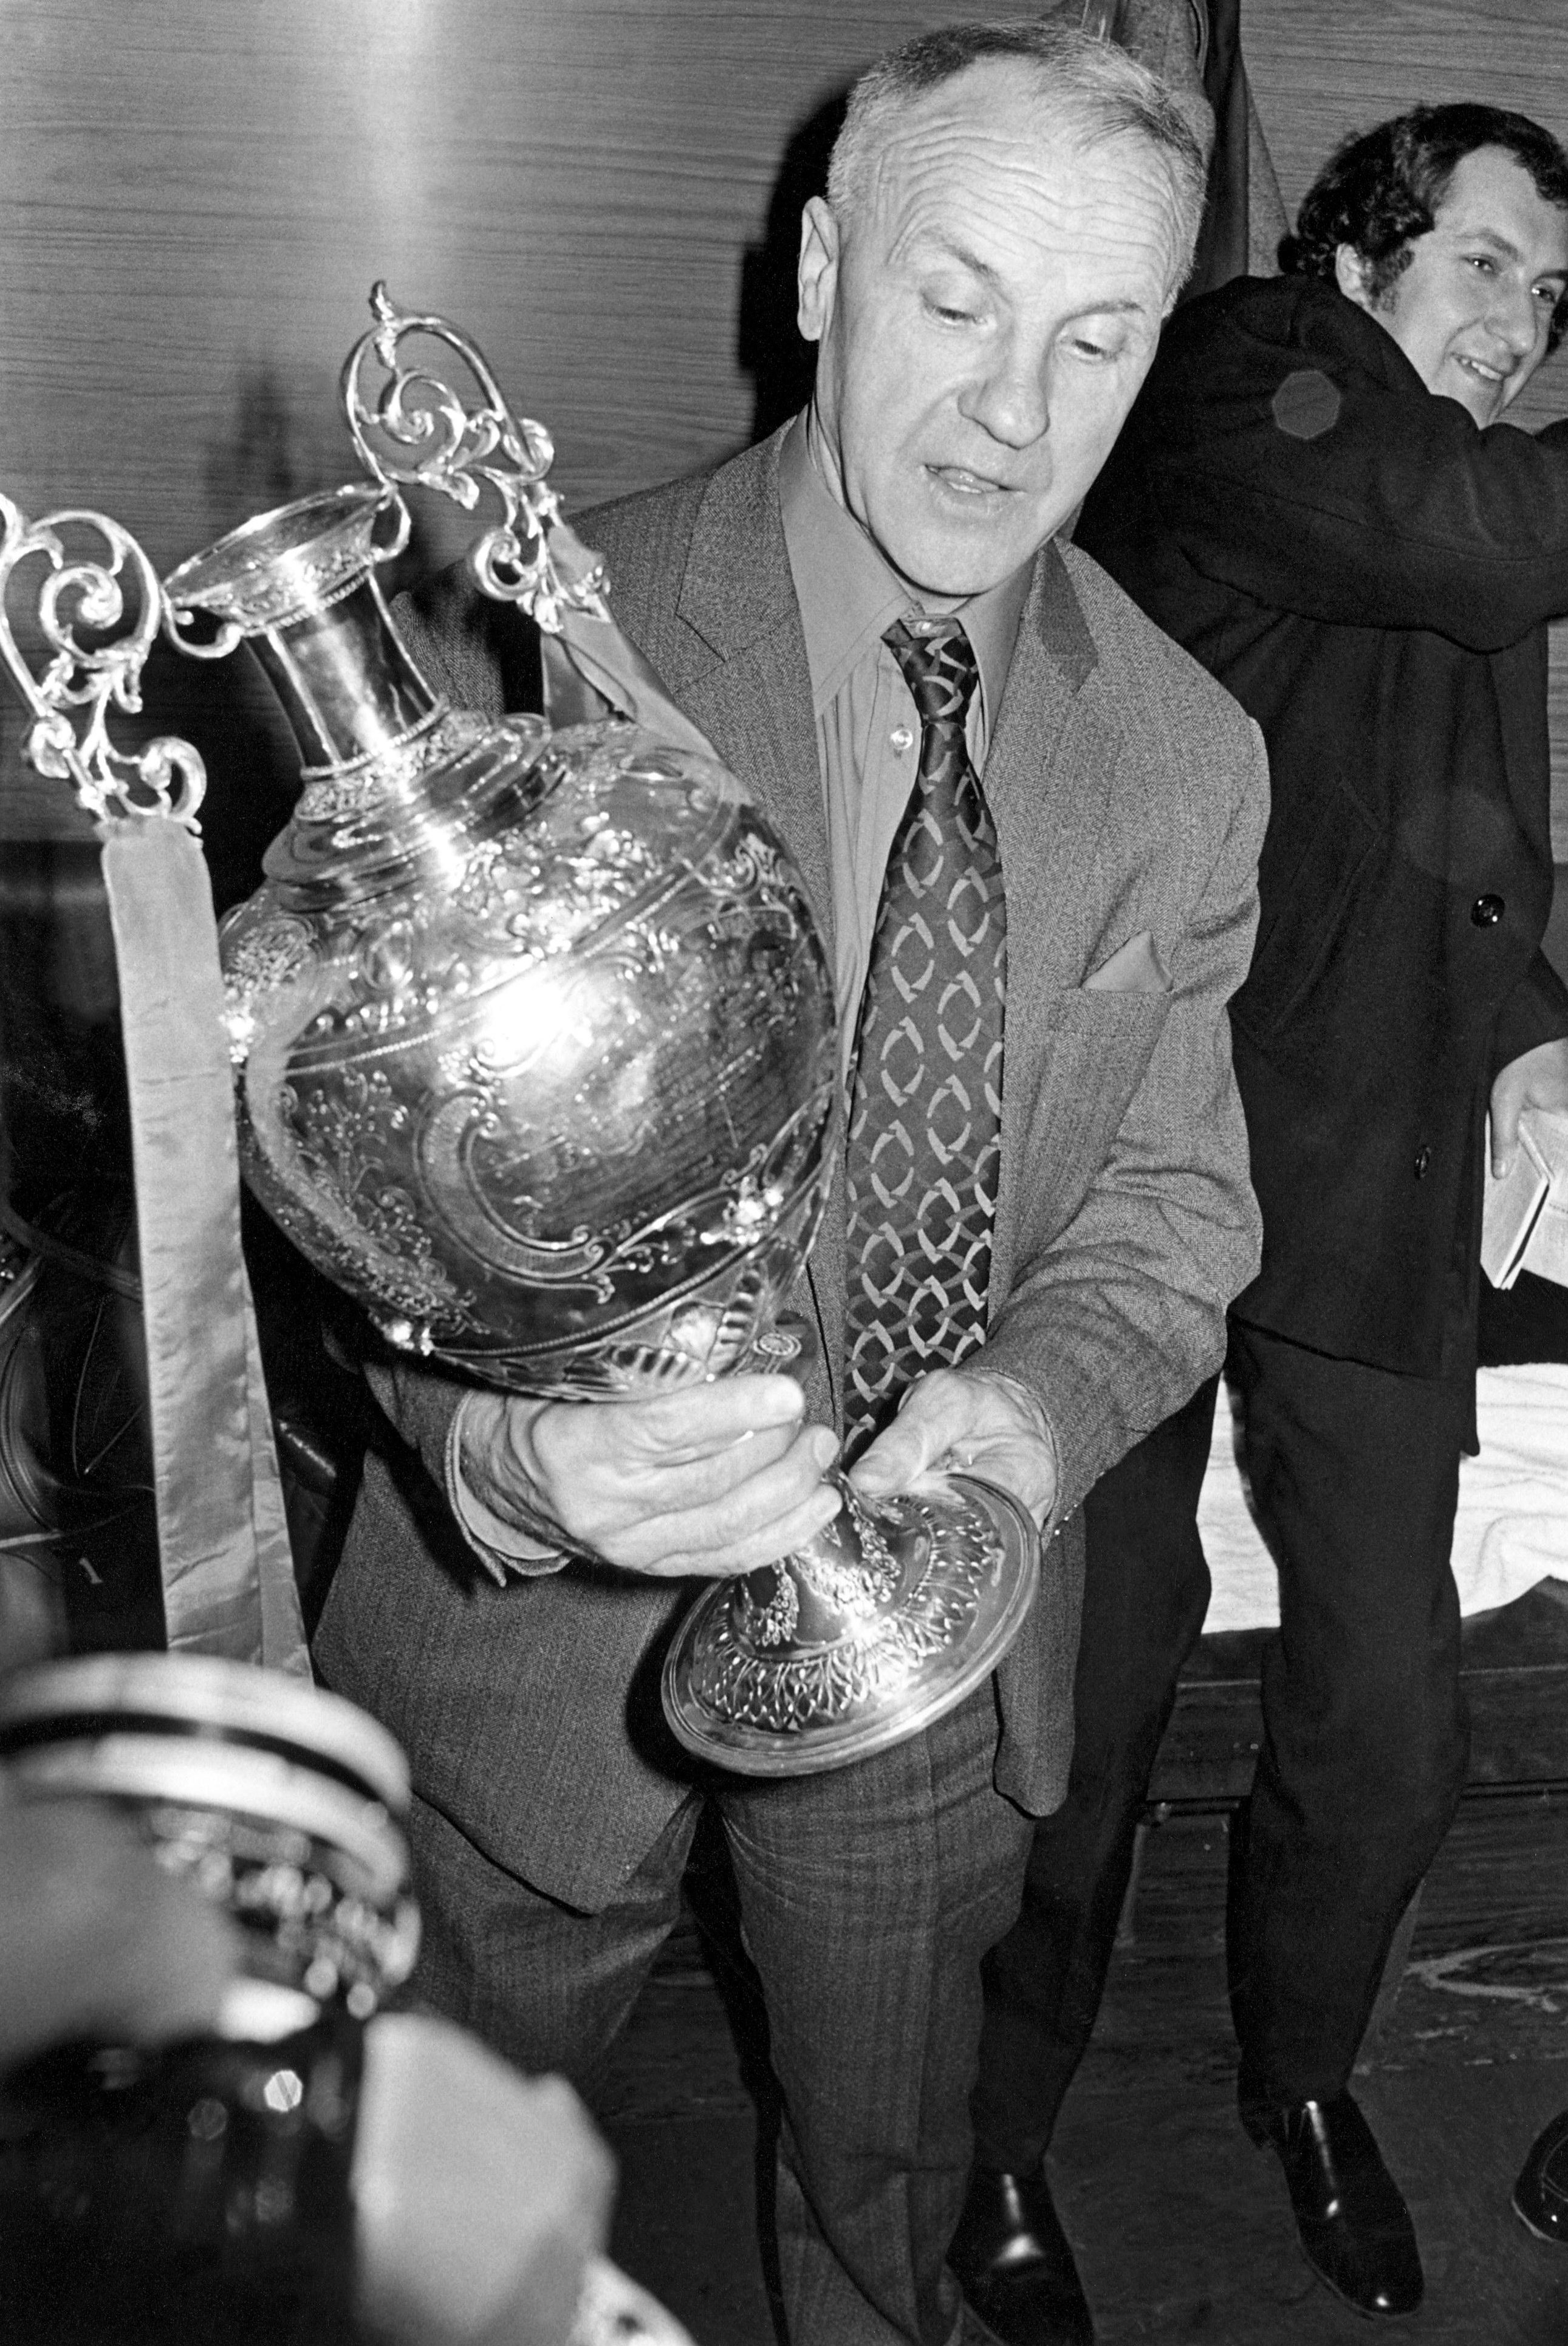 Shankly won the Division One Championship three times